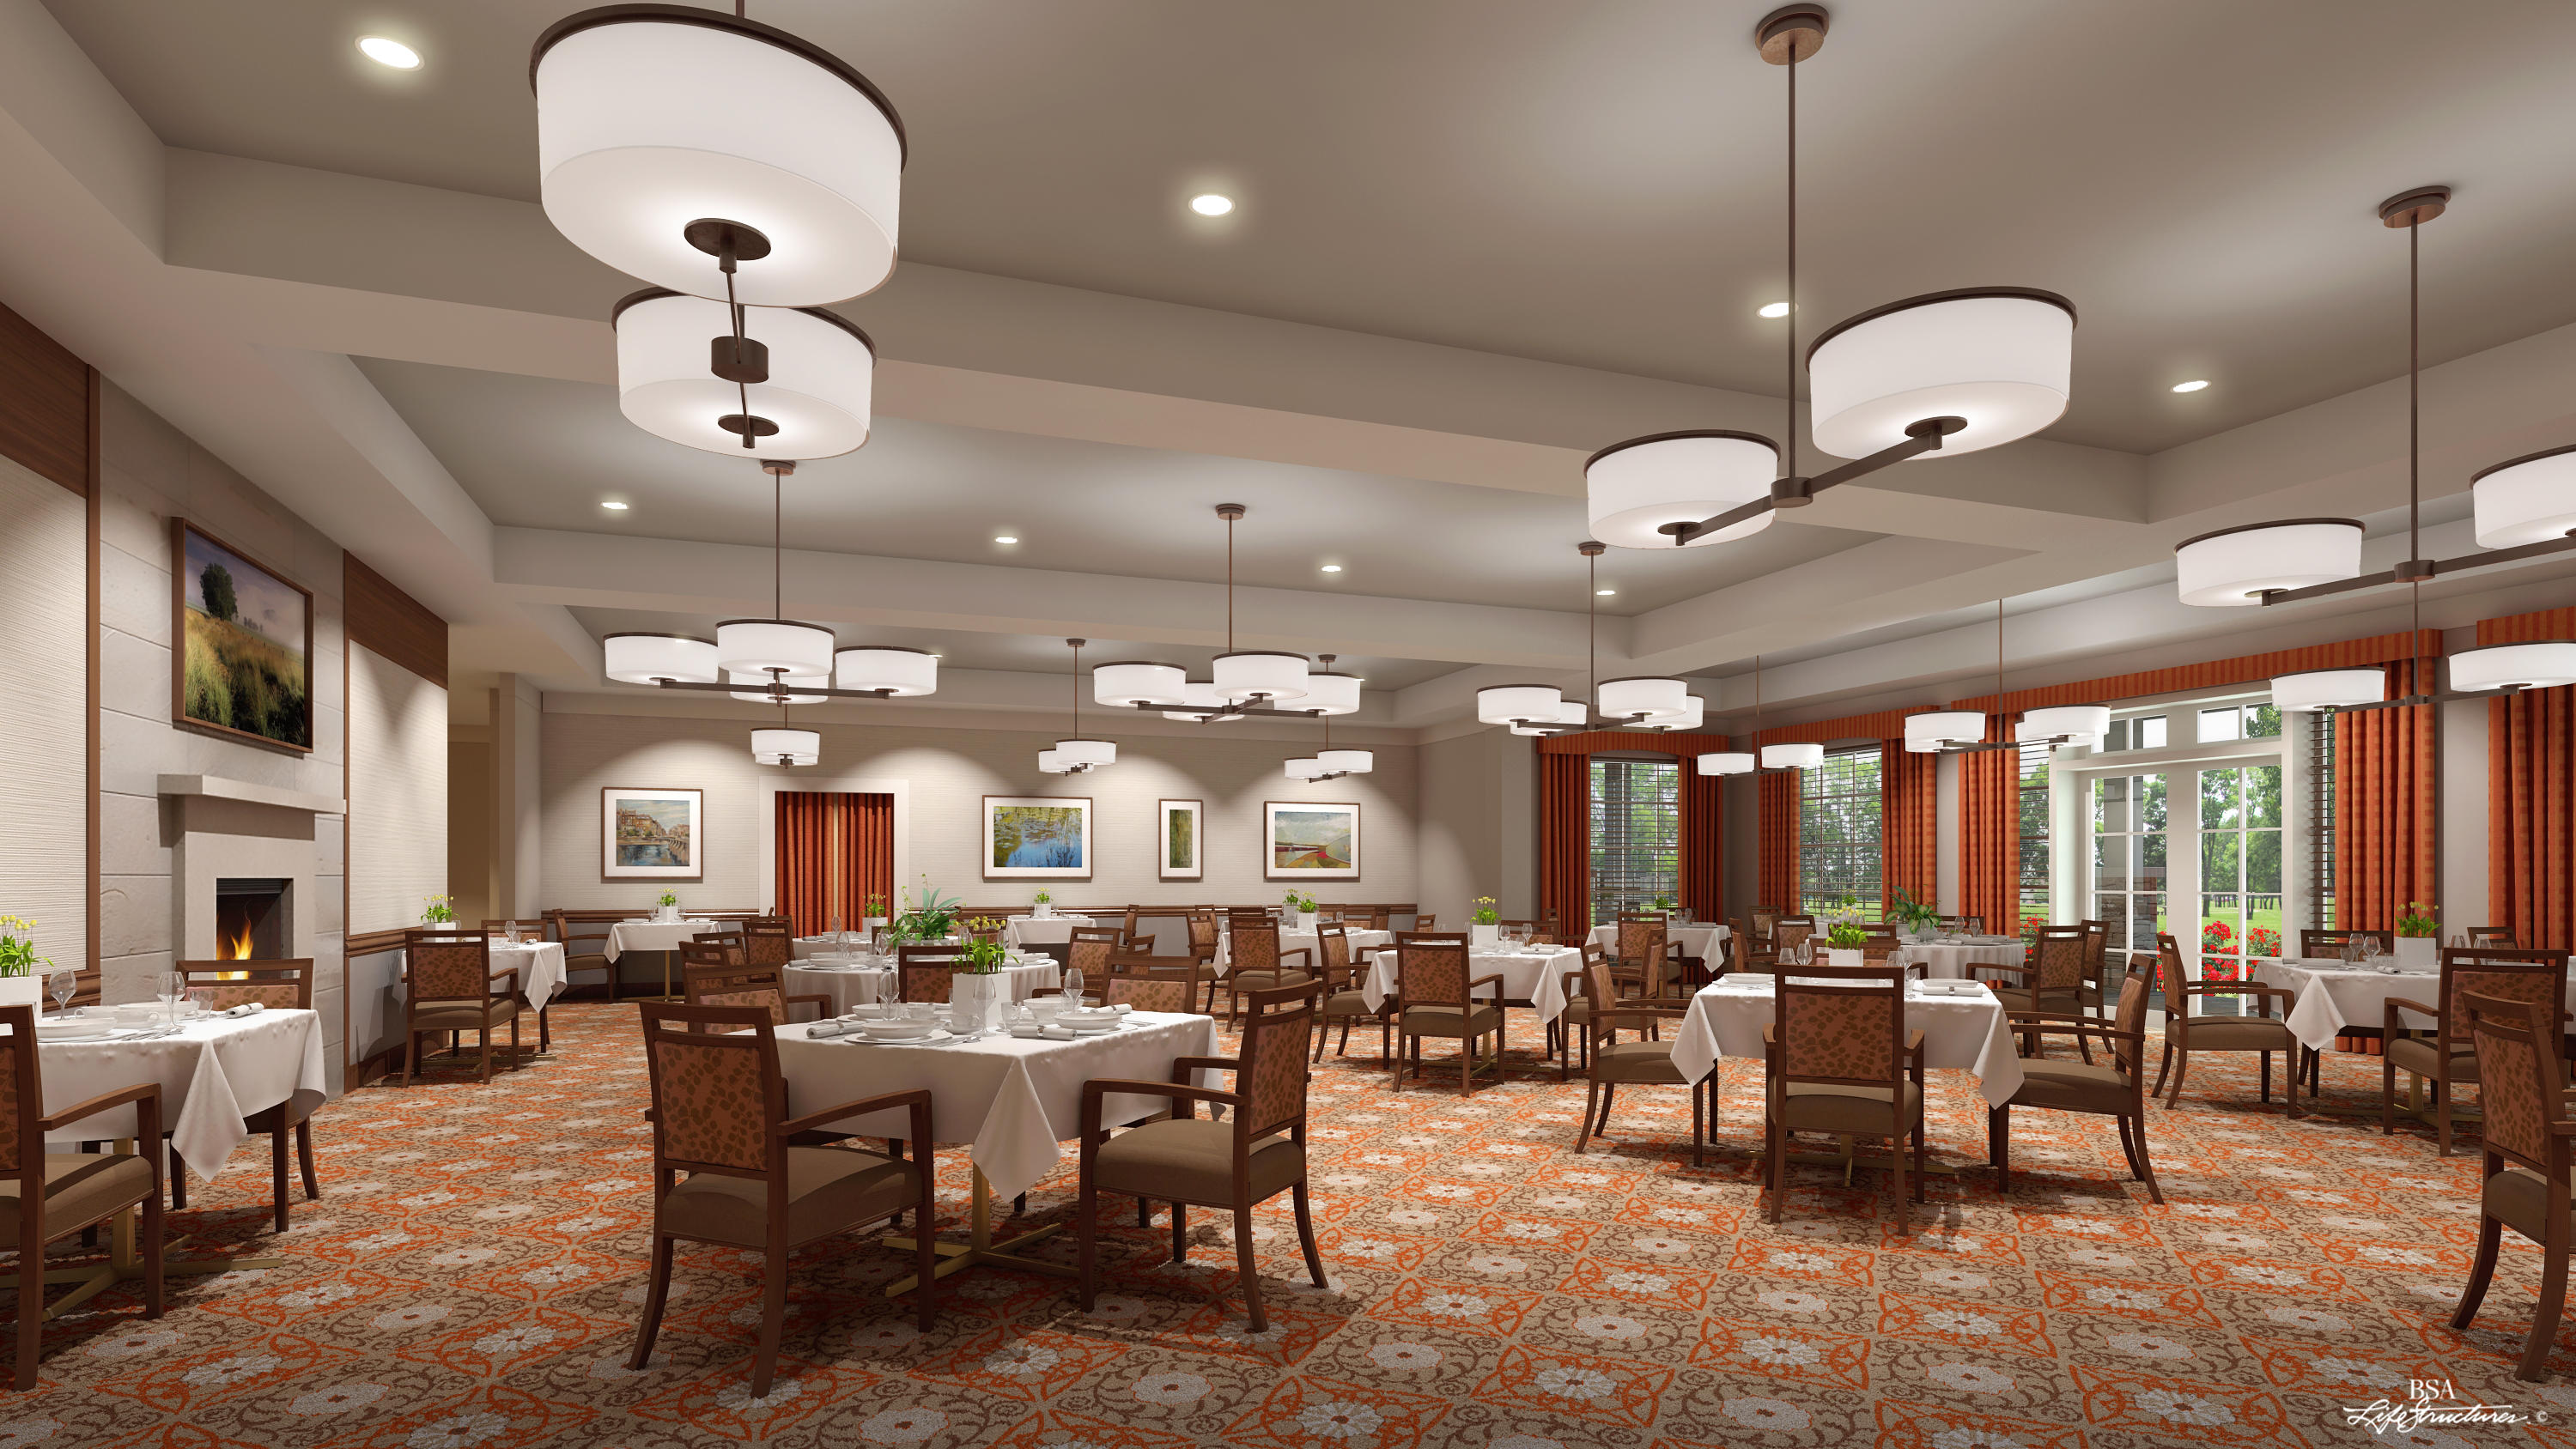 The Sheridan at Overland Park image 4